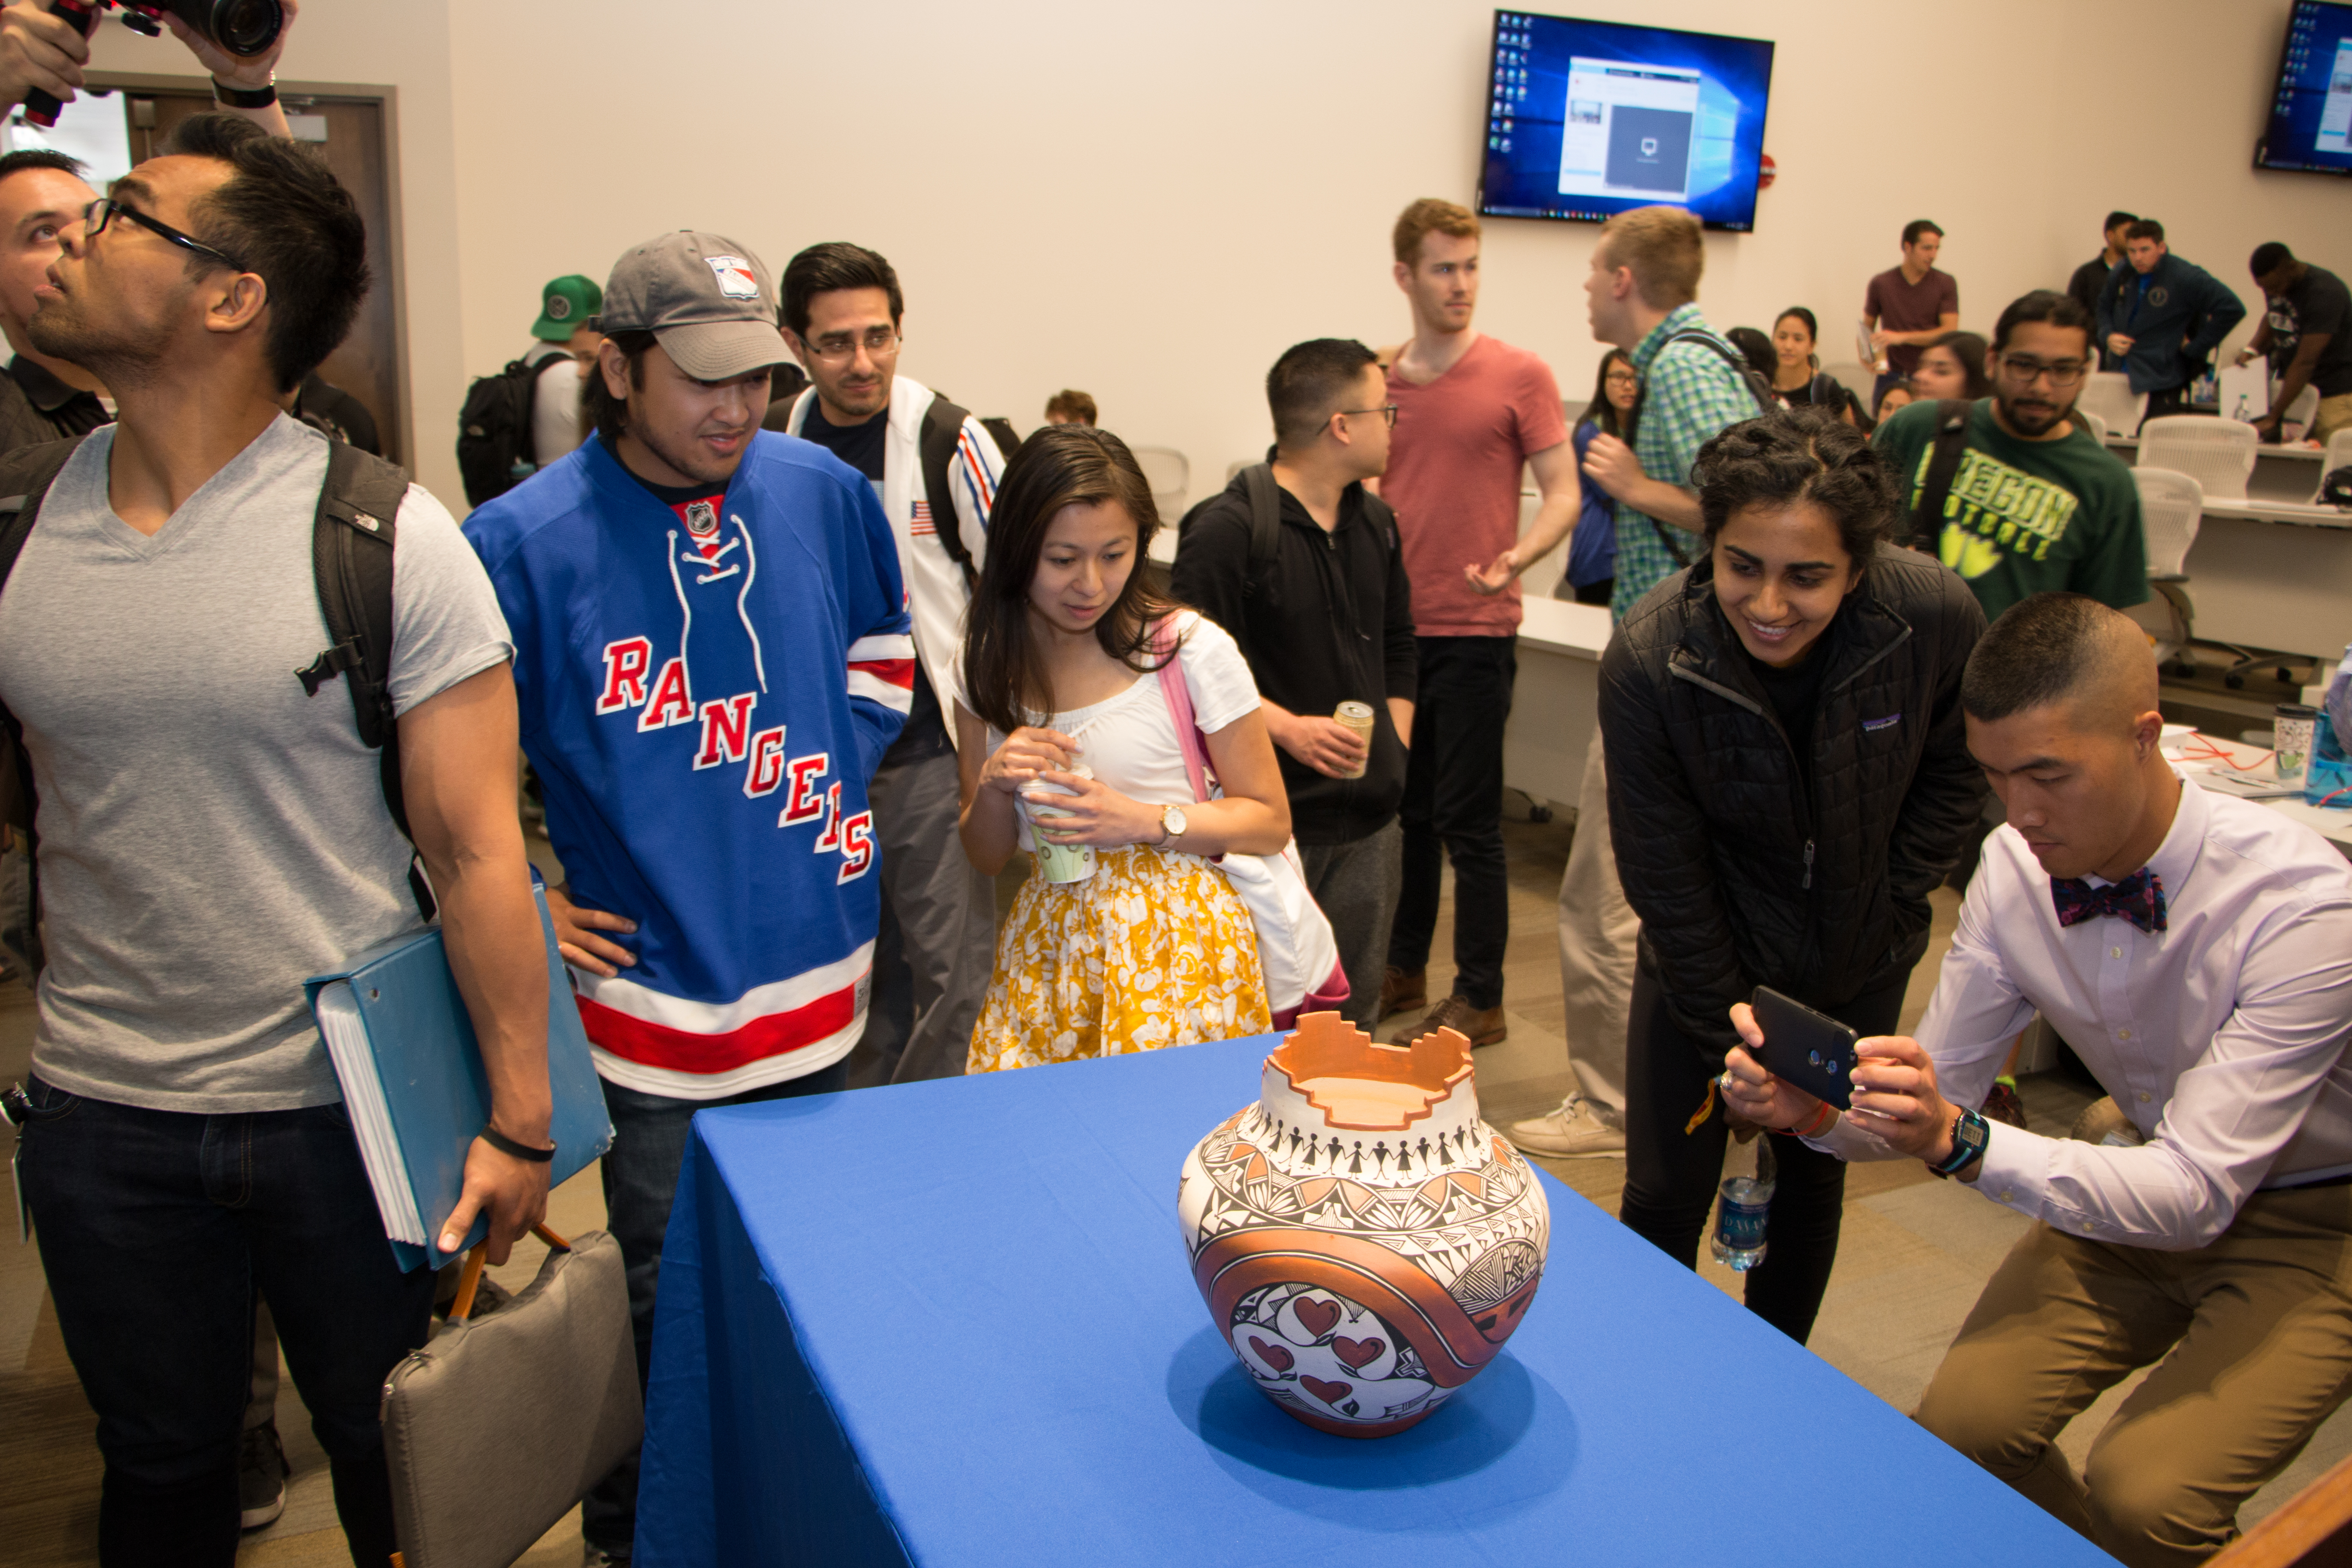 Students examine the finished pot.